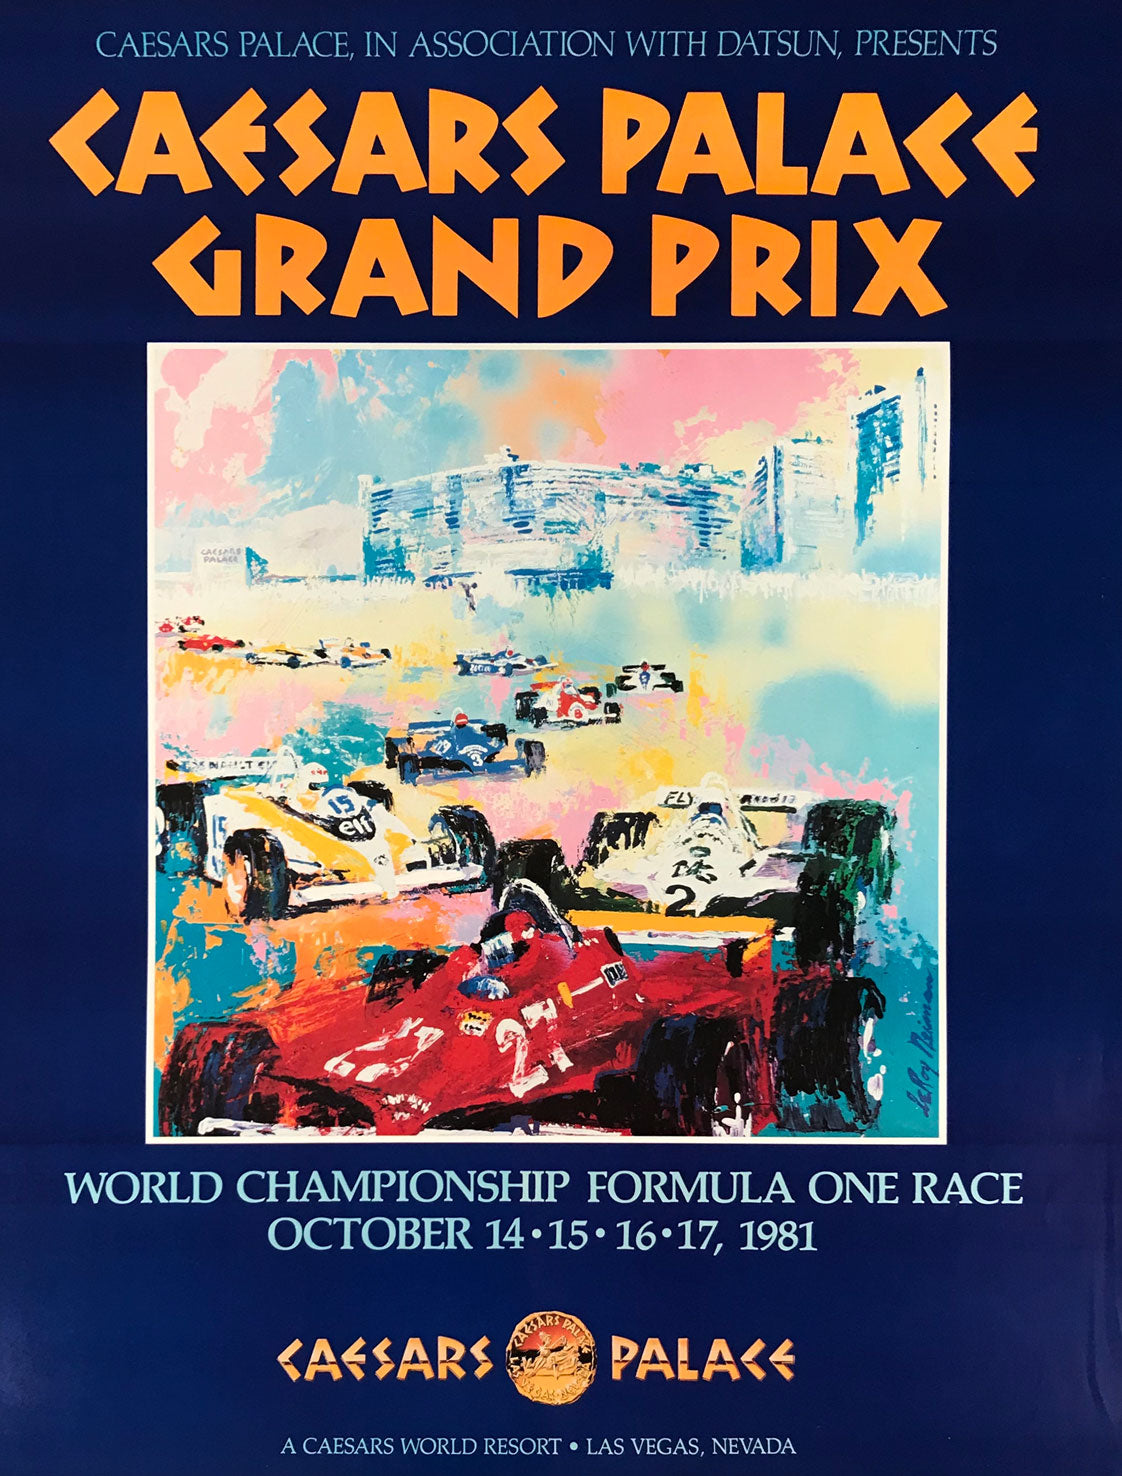 1981 Caesars Palace Grand Prix in Las Vegas poster by LeRoy Neiman